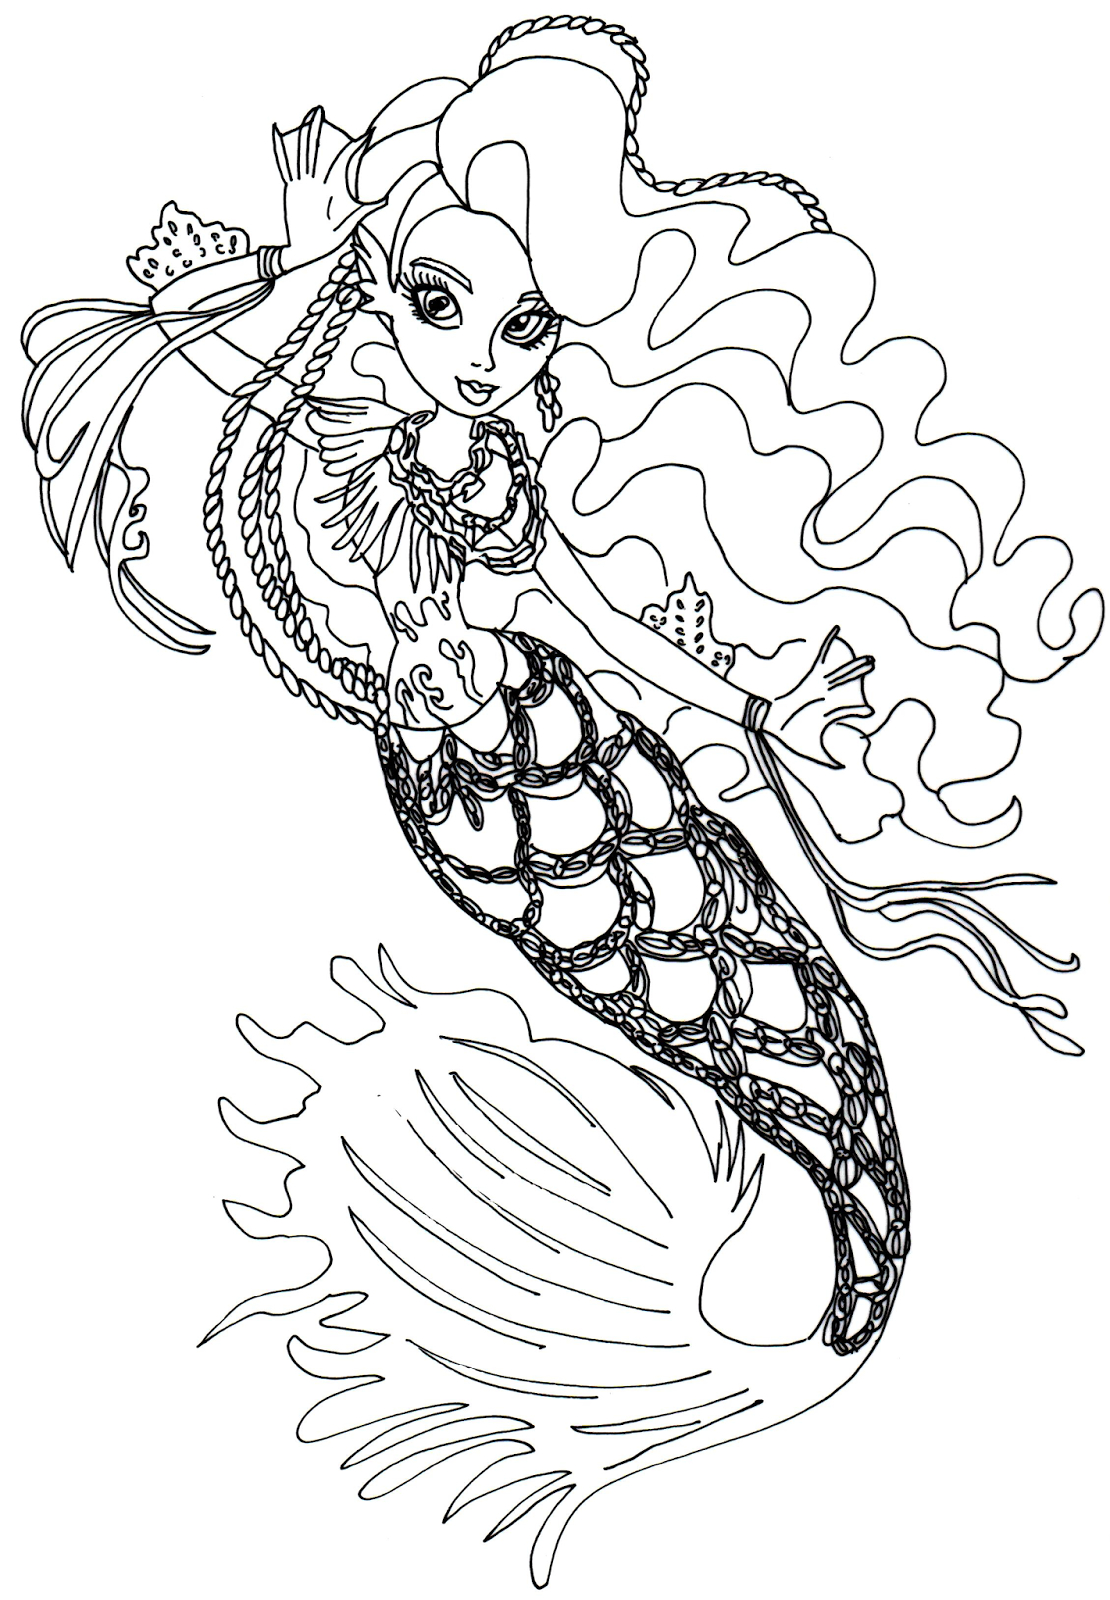 Monster High Coloring Pages Monster High Coloring Page All Collection Of Inspiring Monster High Coloring Pages Colouring Sheets Printables Gallery